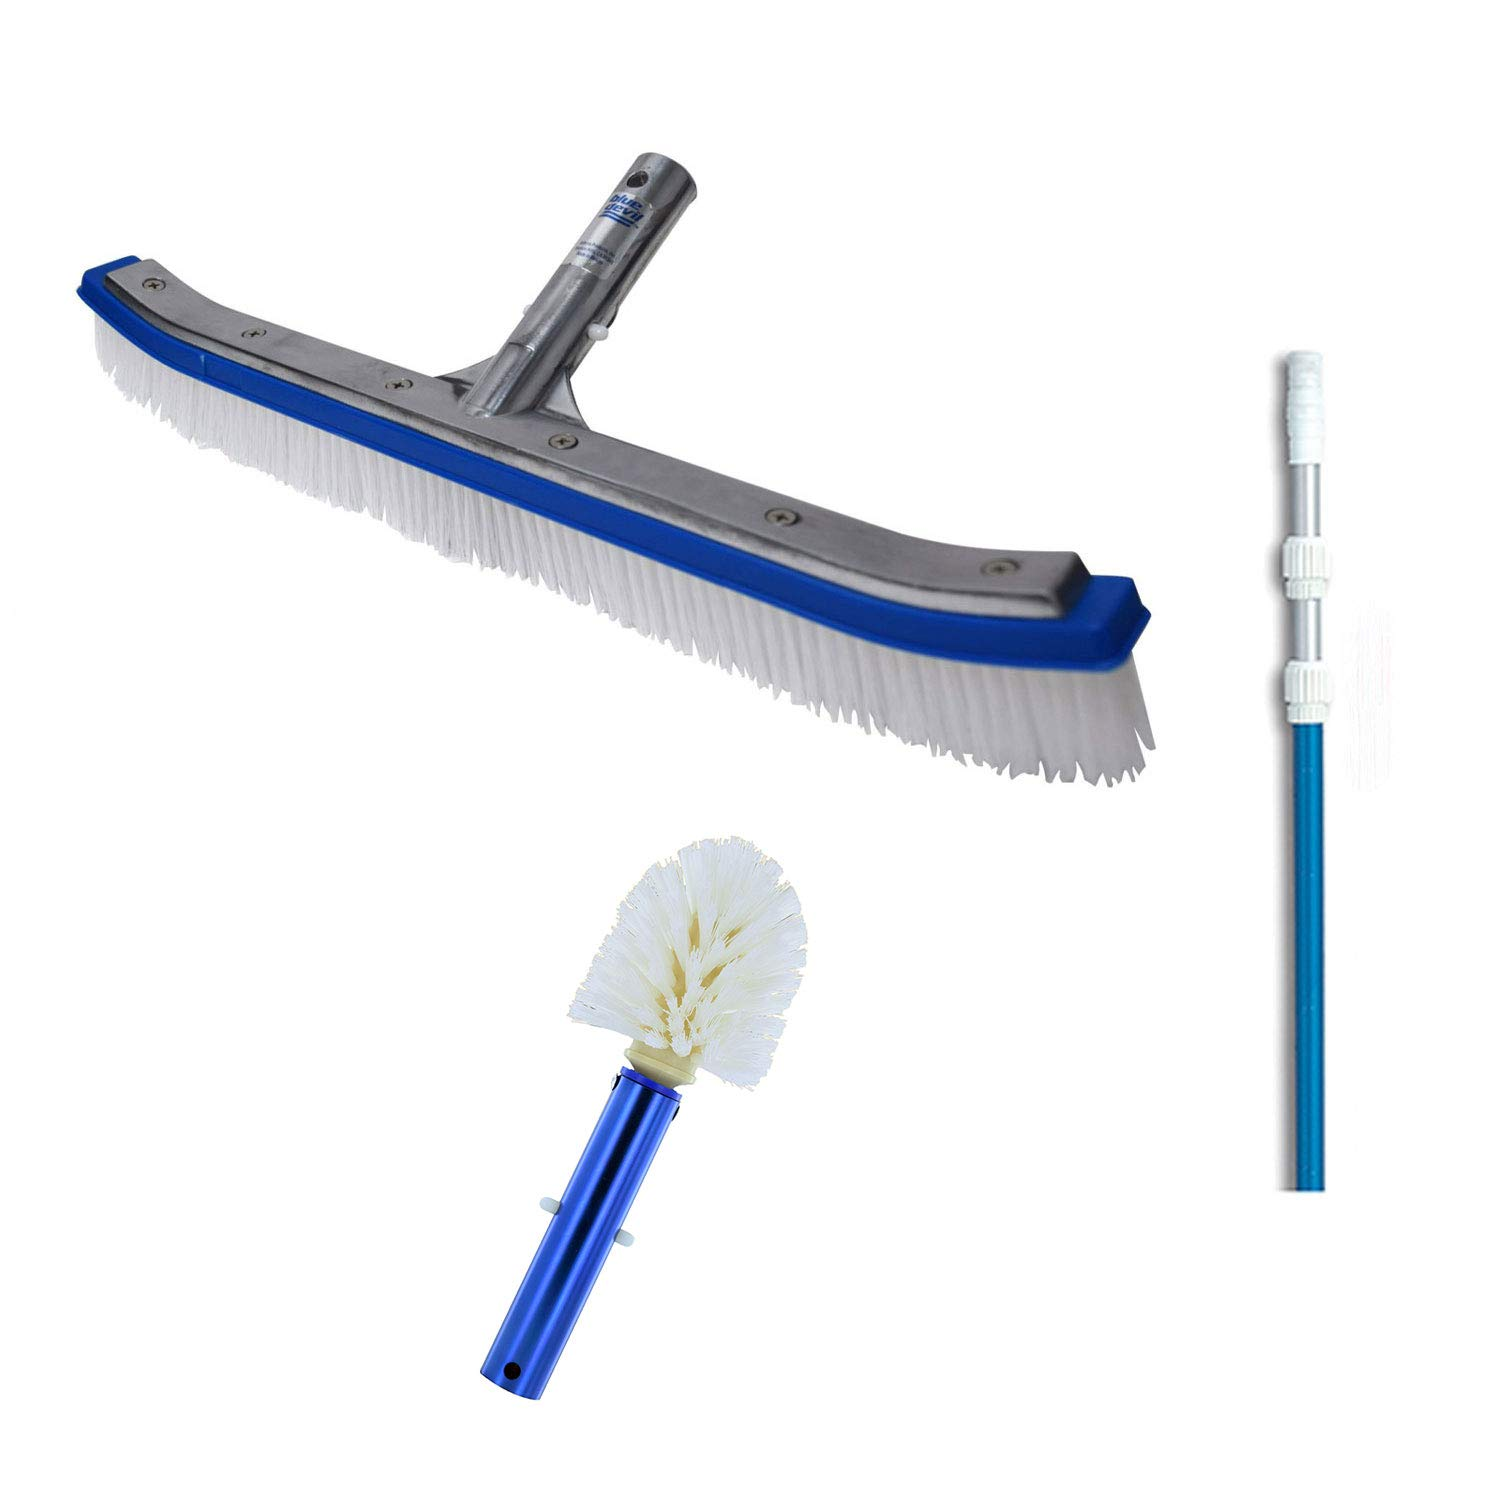 Blue Devil 18 Inch Pool Brush + 7 to 21 Foot Pole + Corner and Step Brush by Blue Devil